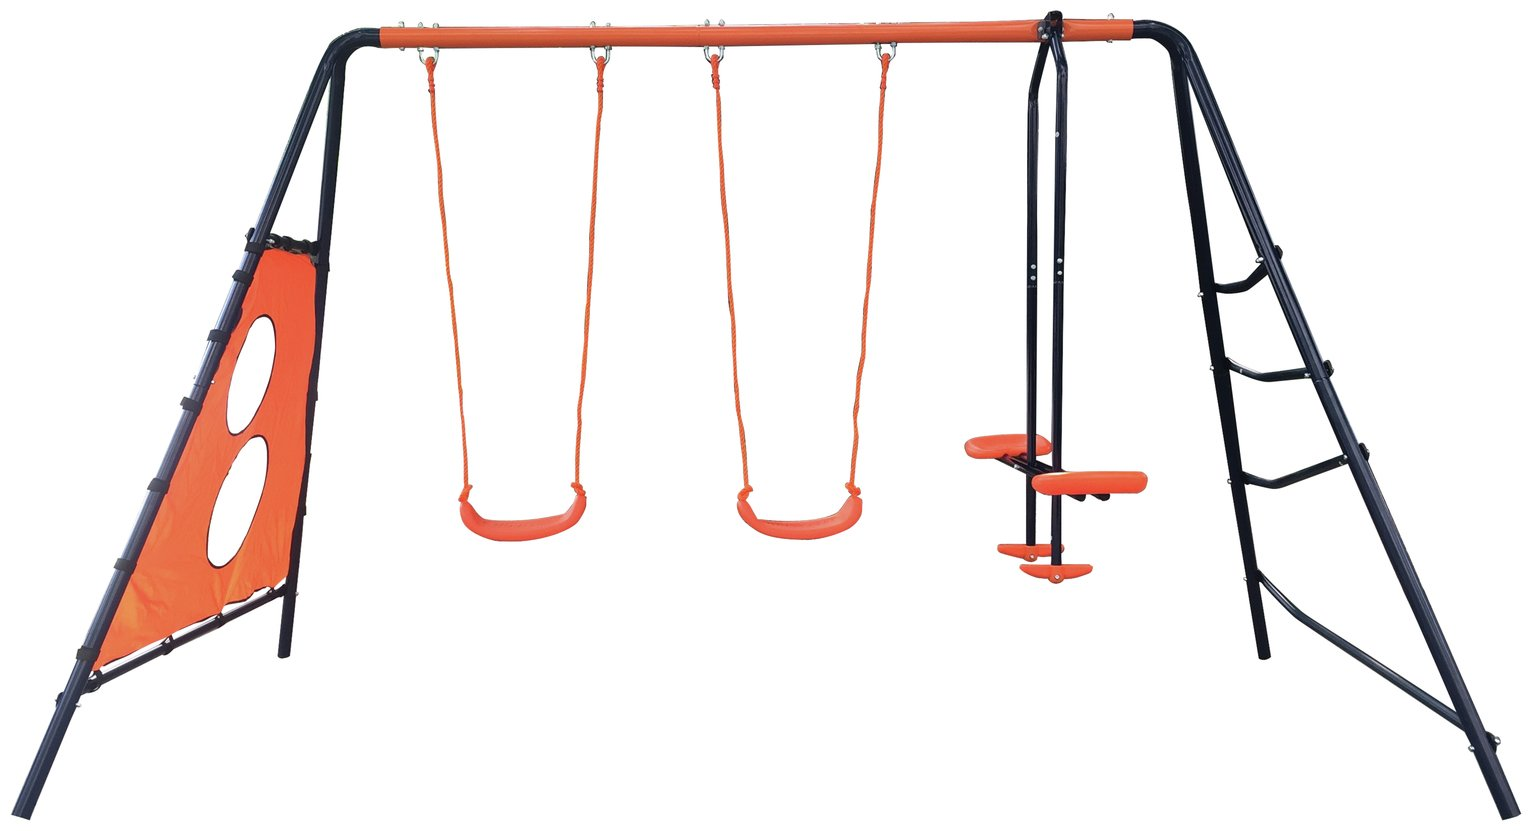 Hedsrom Ariel Multiplay Double Swing Set.